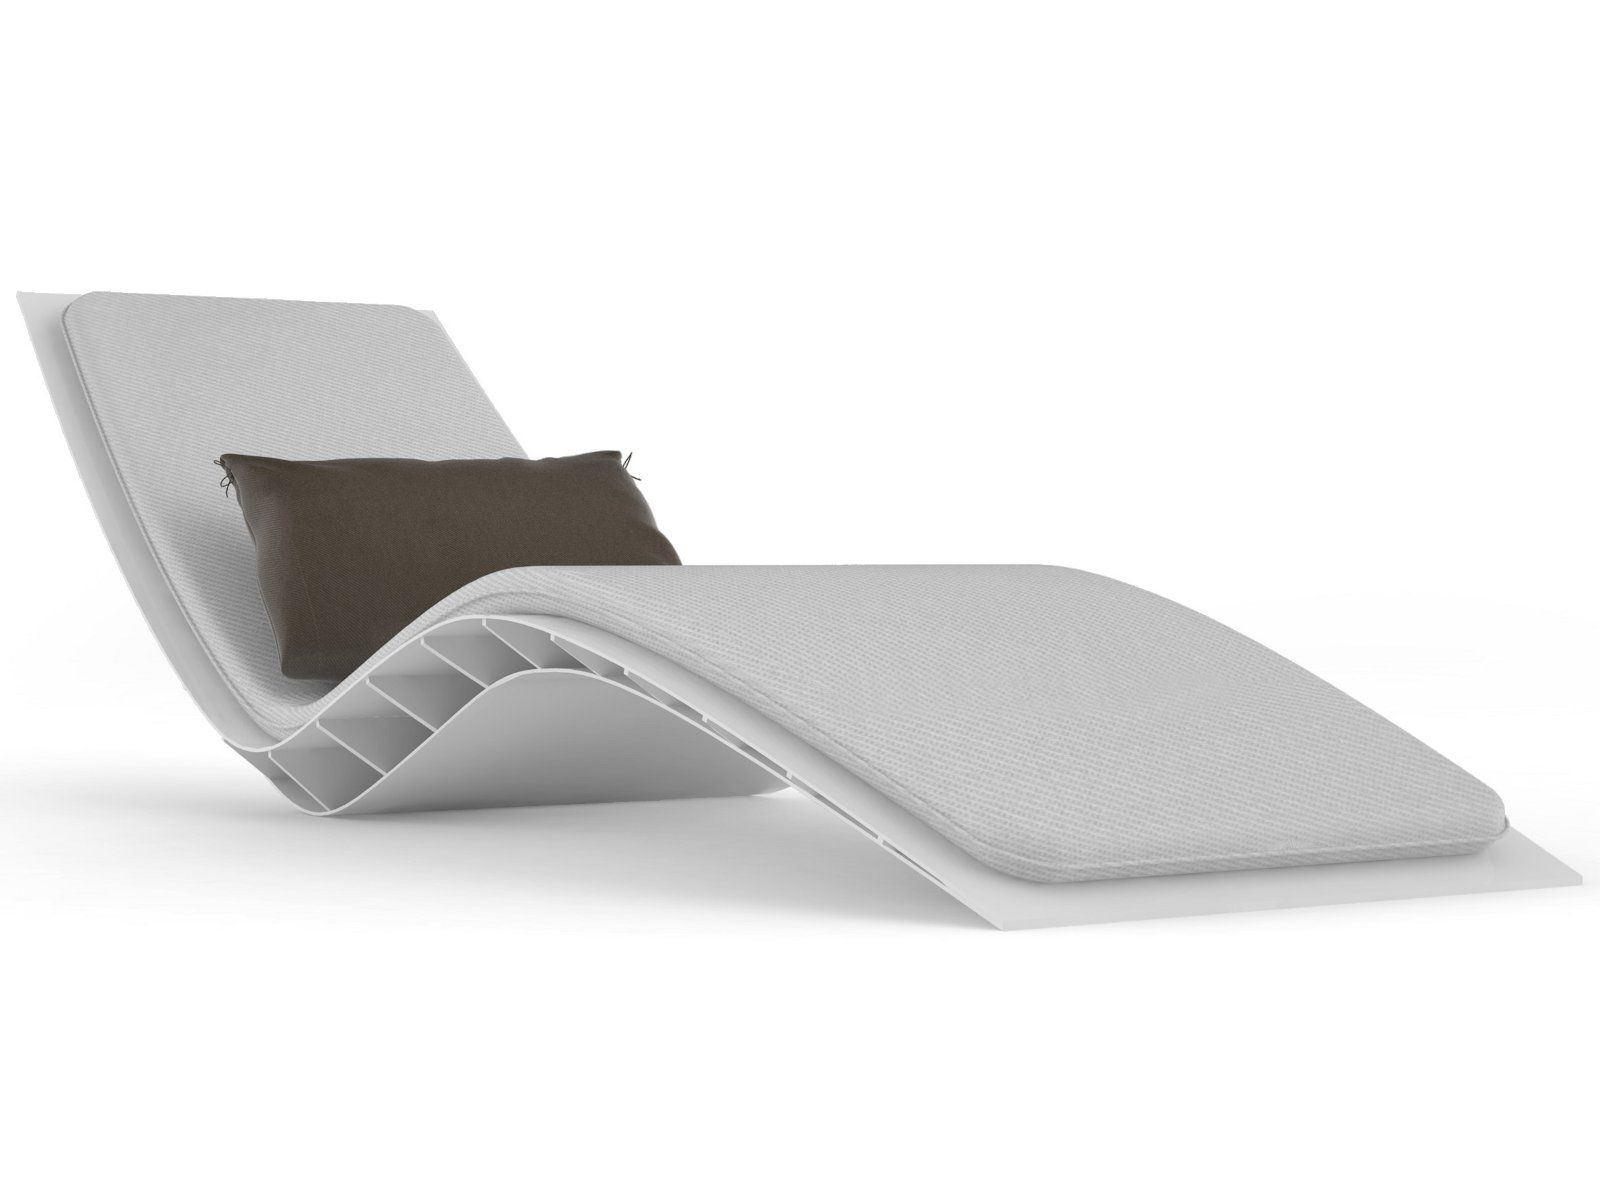 Modern Outdoor Chaise Lounges Inside Current Awesome Modern Chaise Lounge Chair Cushions For Relaxing (View 9 of 15)